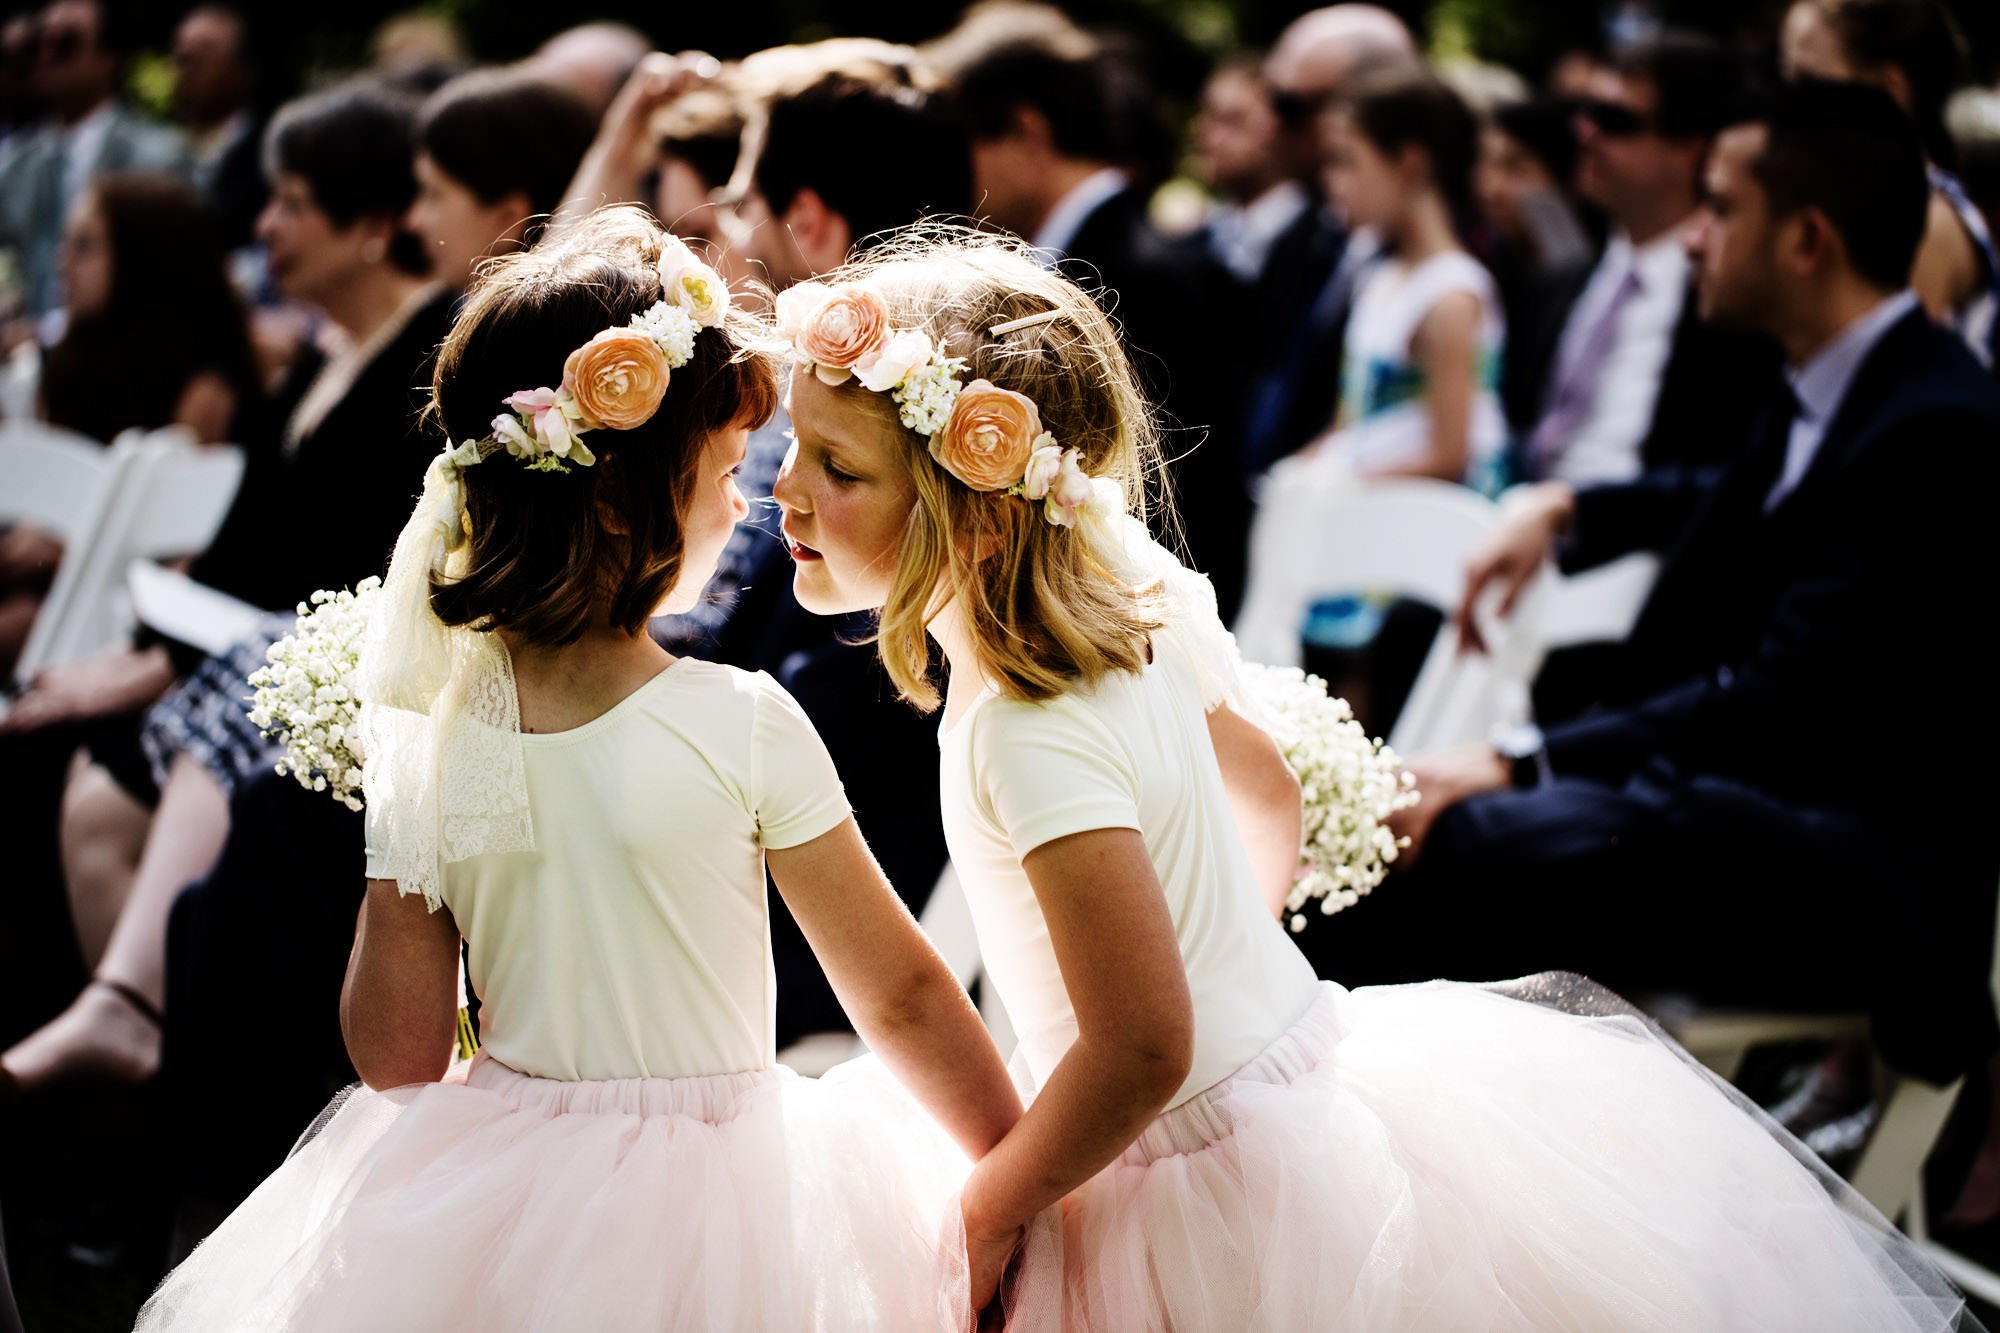 Flower girls whisper to each other while the couple gets married.